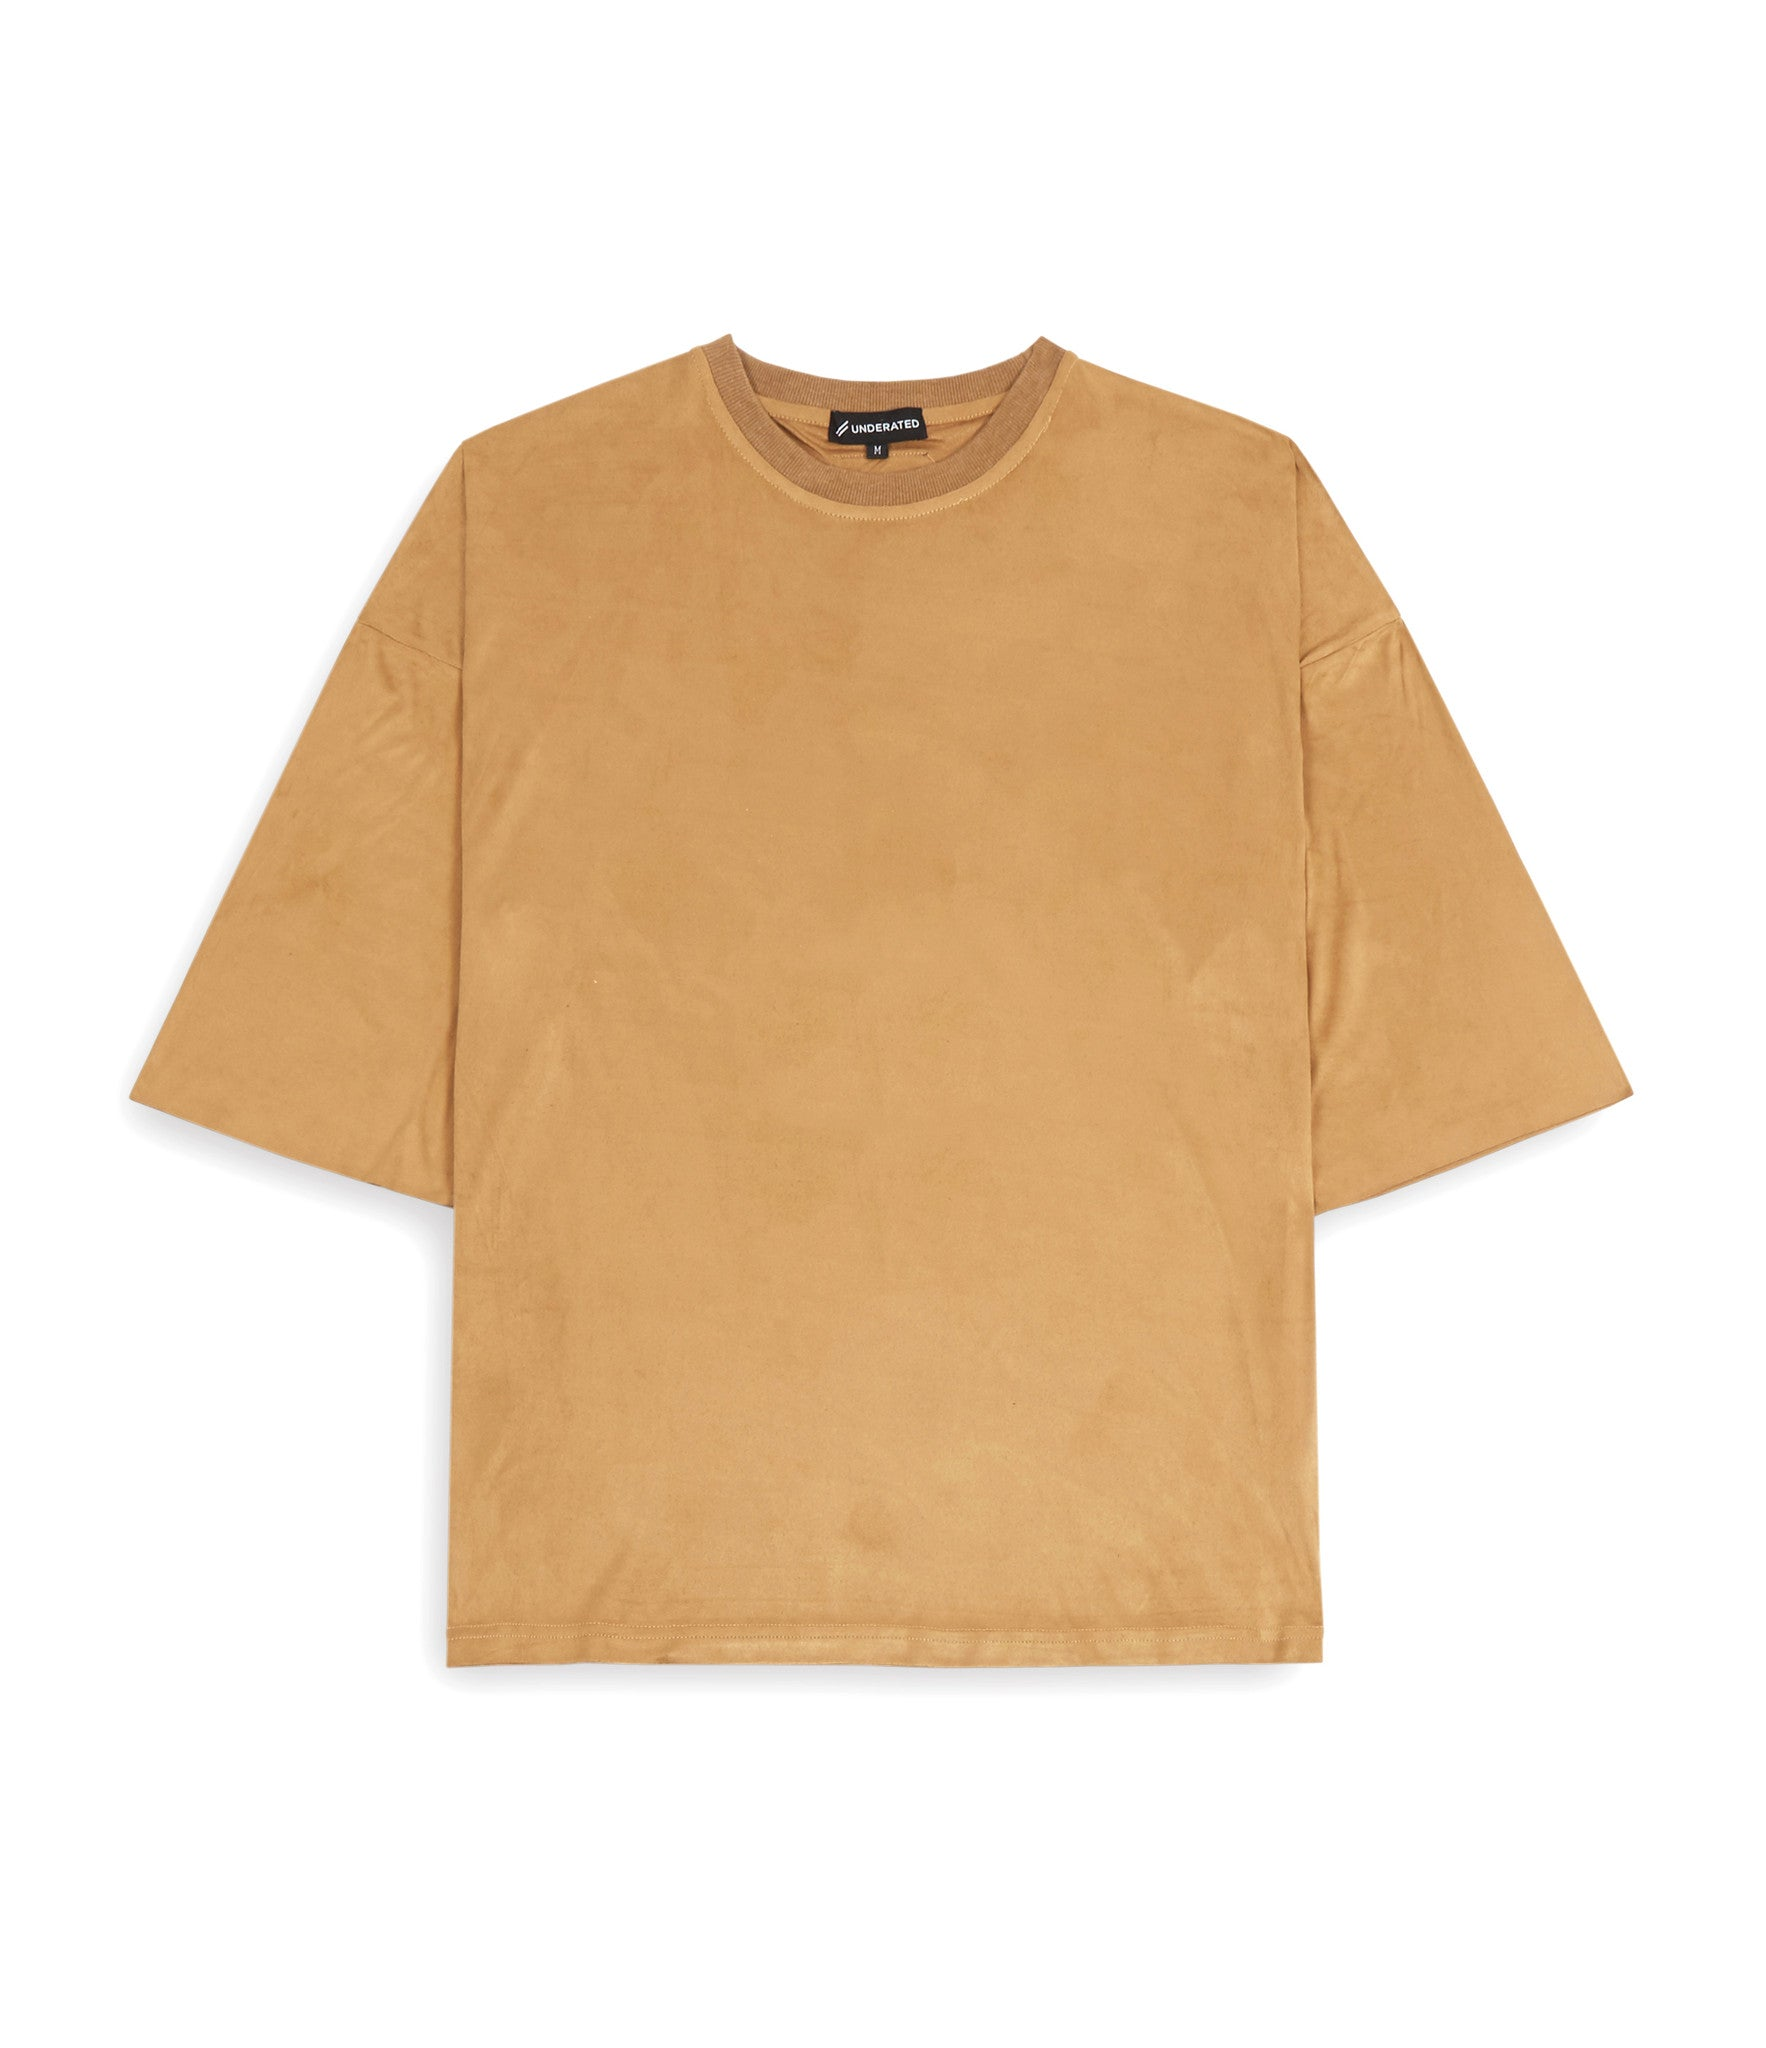 TS302 Suede Oversized Box Tee - Tan - underated london - underatedco - 1